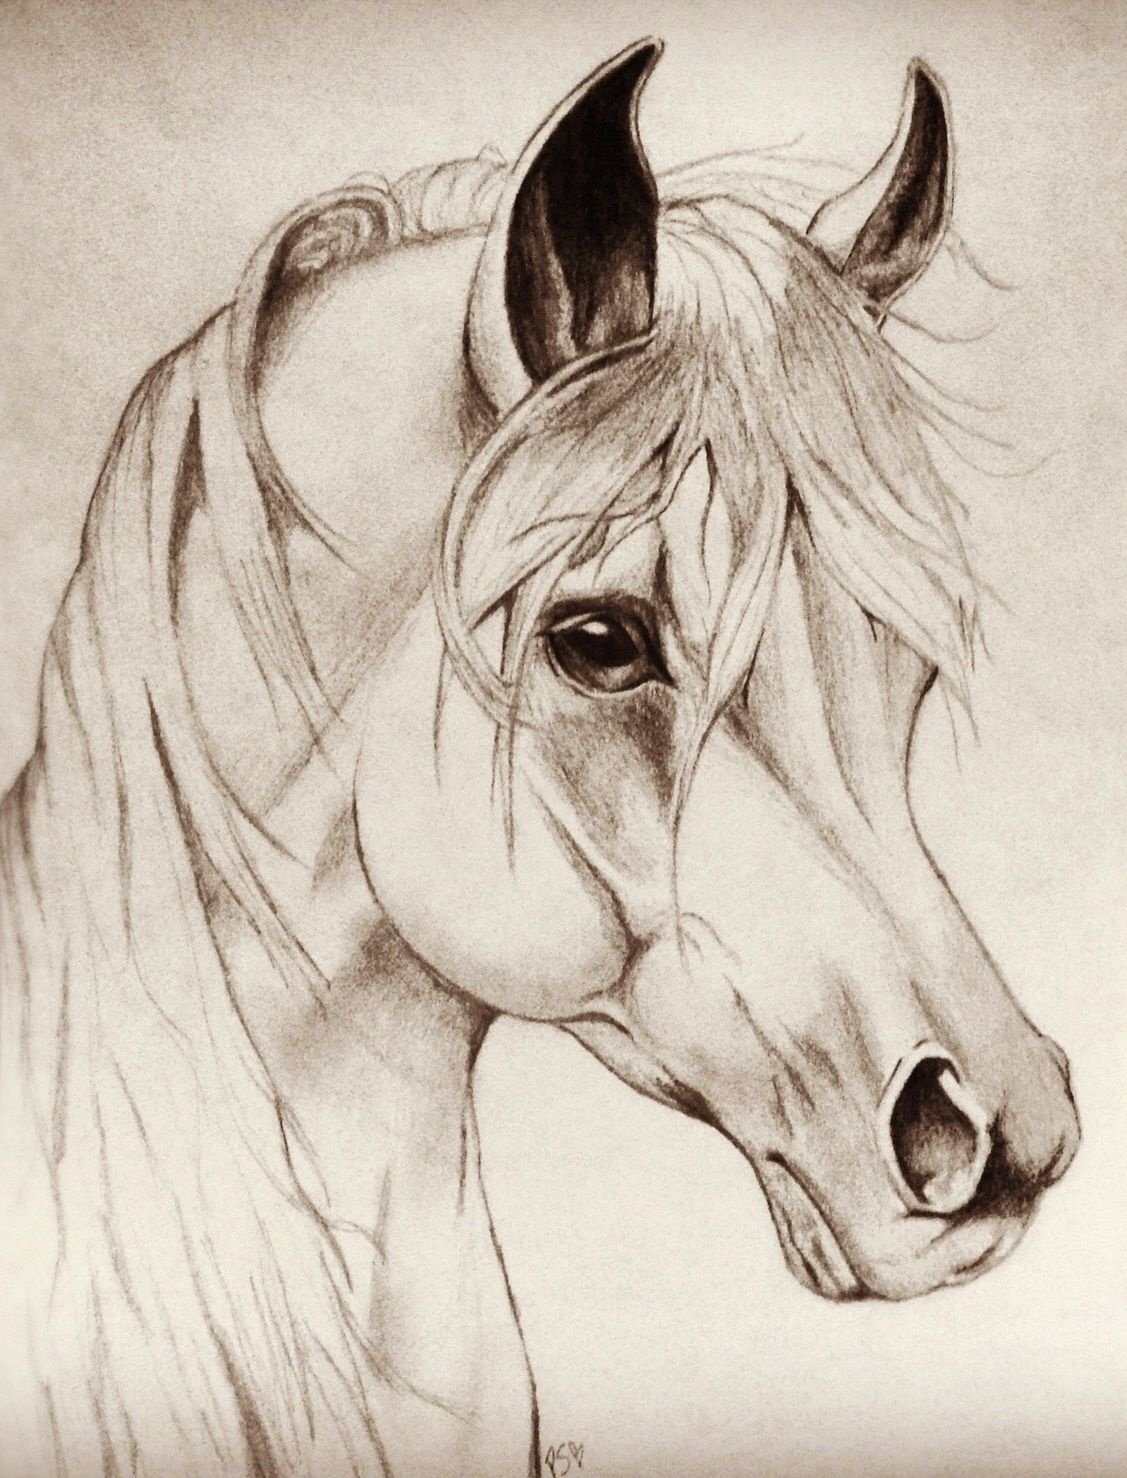 Horse Drawing By Me Patrycia Sulewski(: Drawn With Pencil